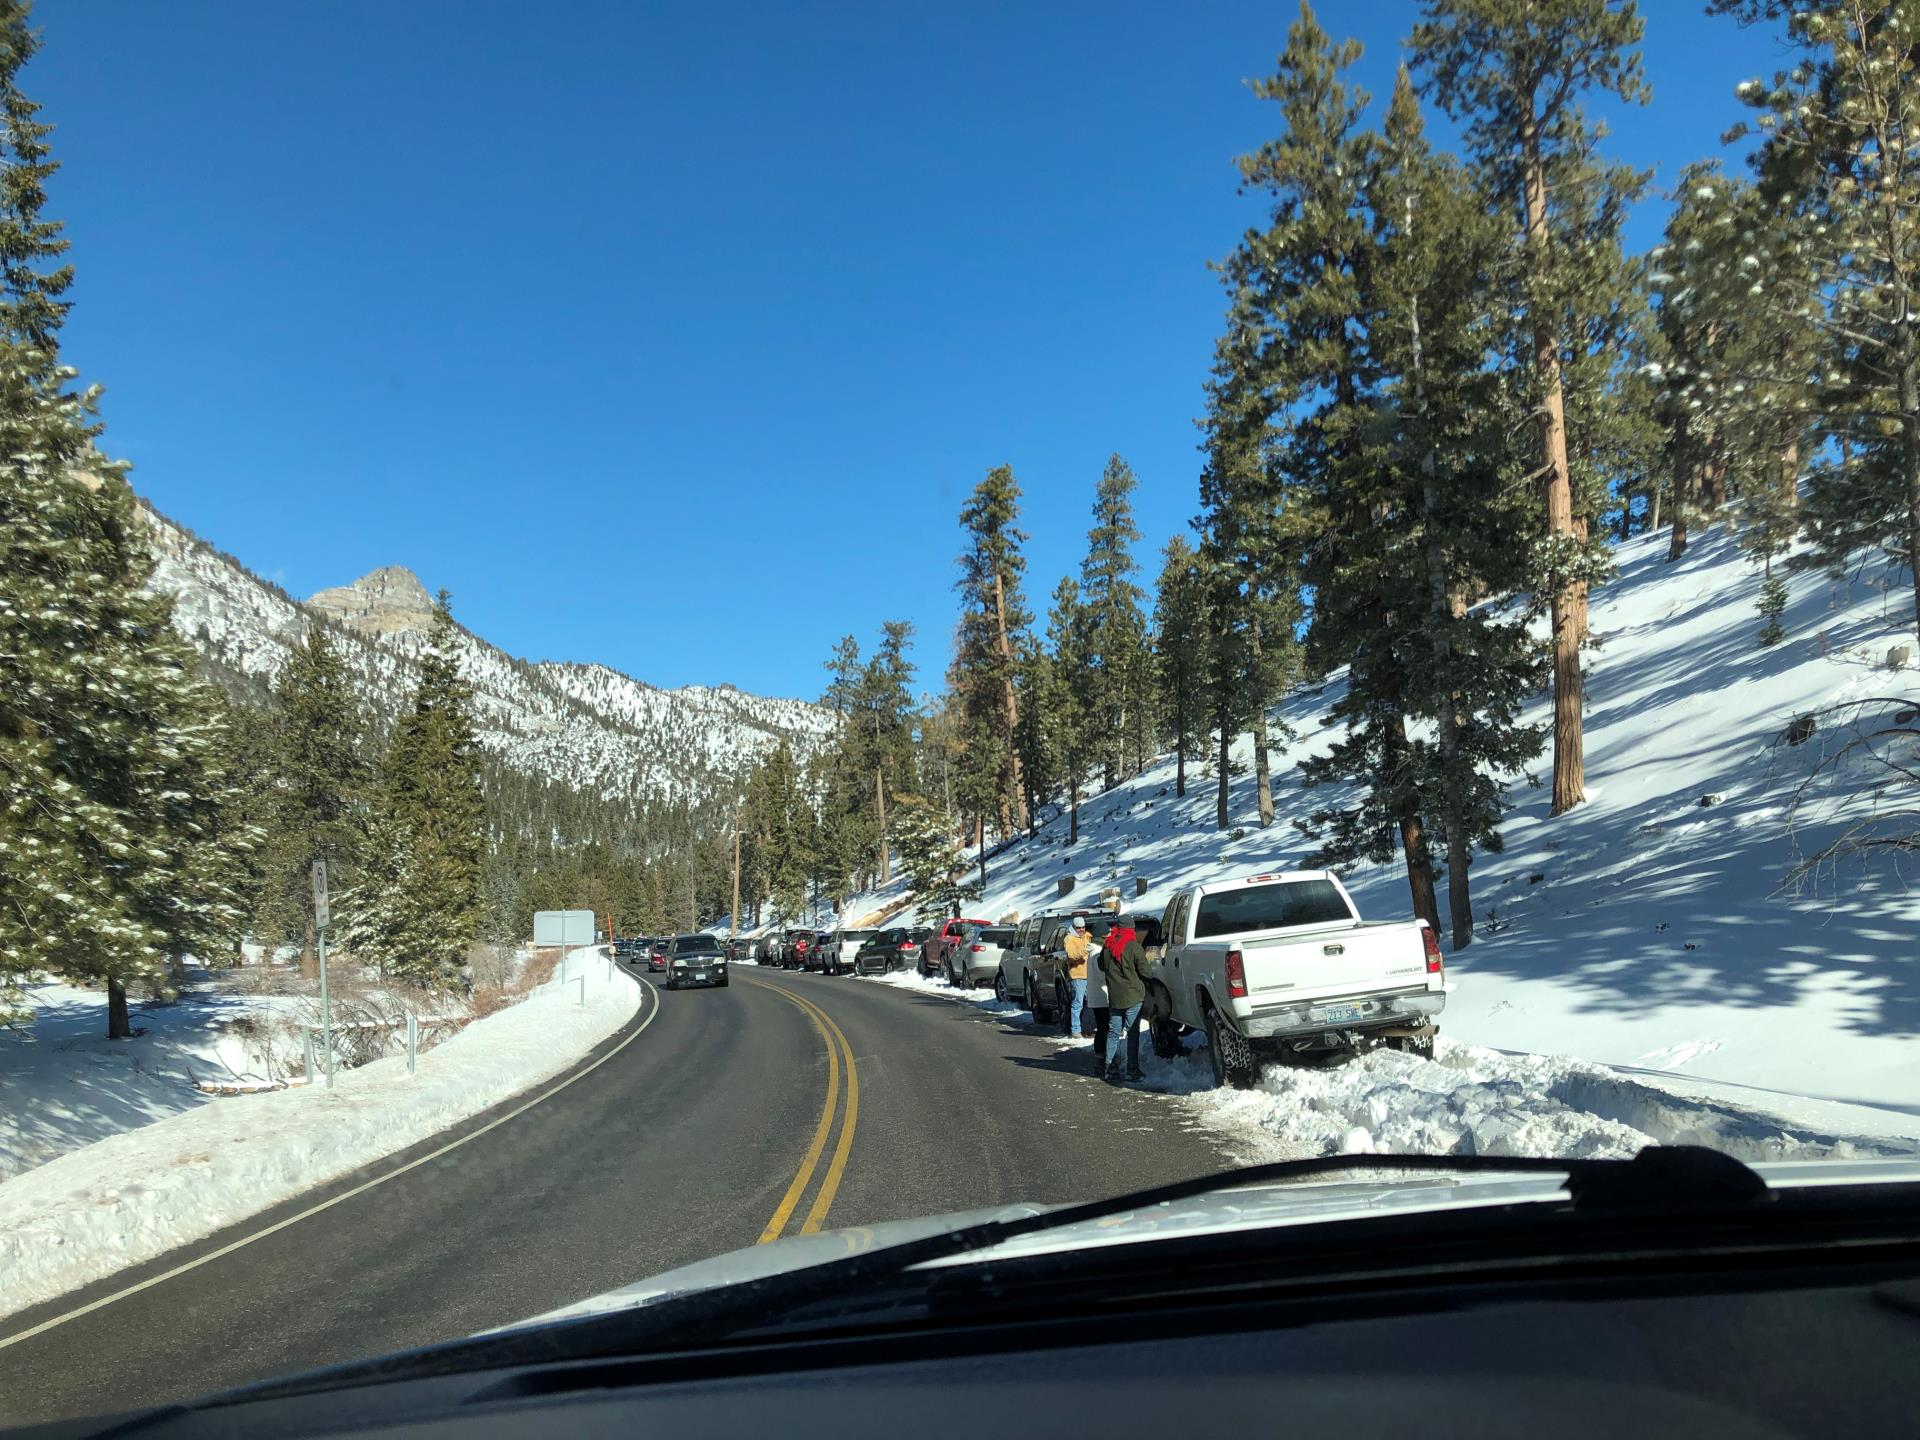 Cars parked along Mt. Charleston with snow on either side